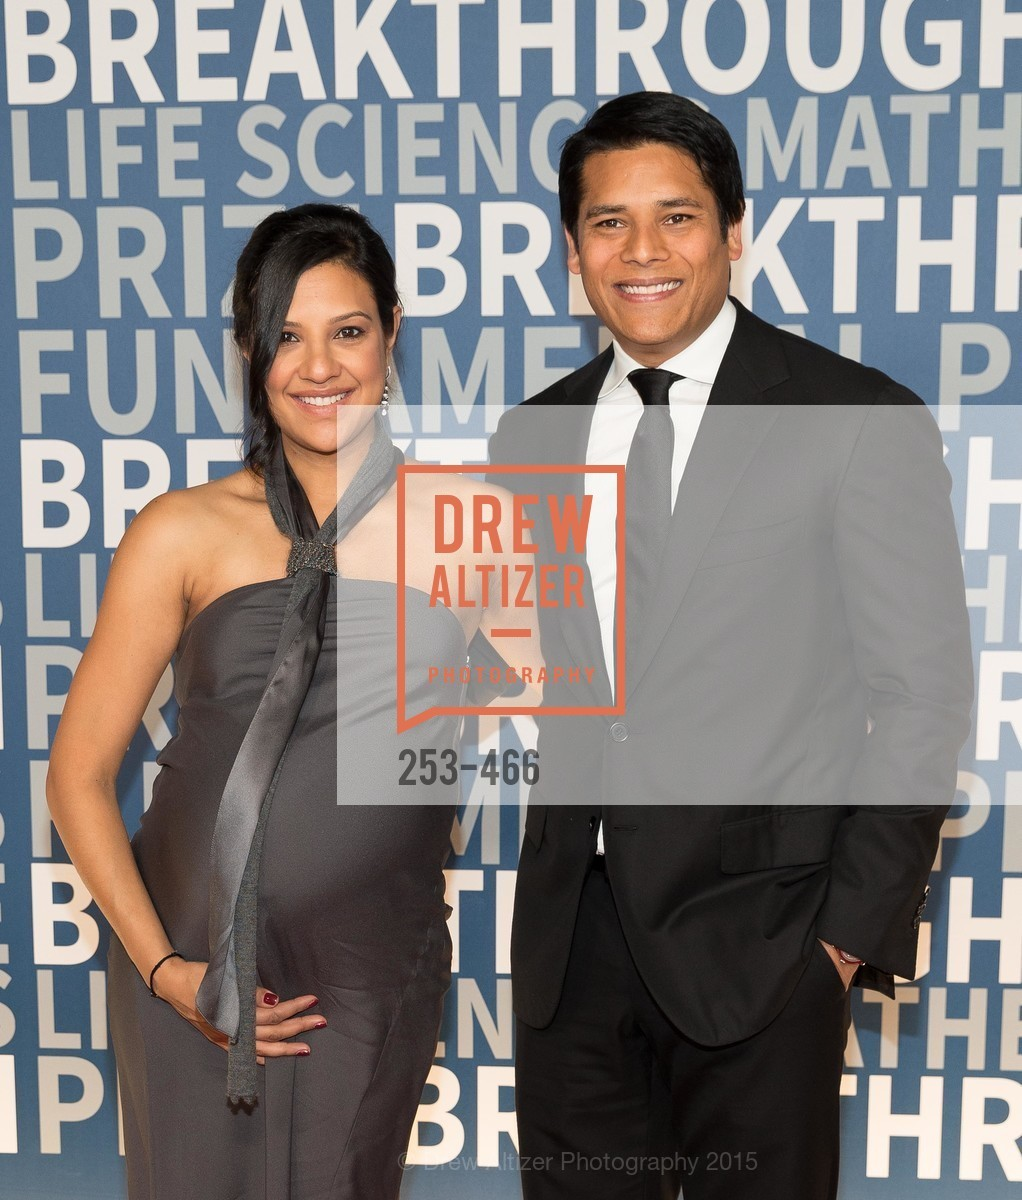 Megha Tolia, Nirav Tolia, THE BREAKTHROUGH PRIZE Hosted By Seth MacFarlane, Ames Research Center. Naval Air Station, Moffett Field, November 8th, 2015,Drew Altizer, Drew Altizer Photography, full-service event agency, private events, San Francisco photographer, photographer California